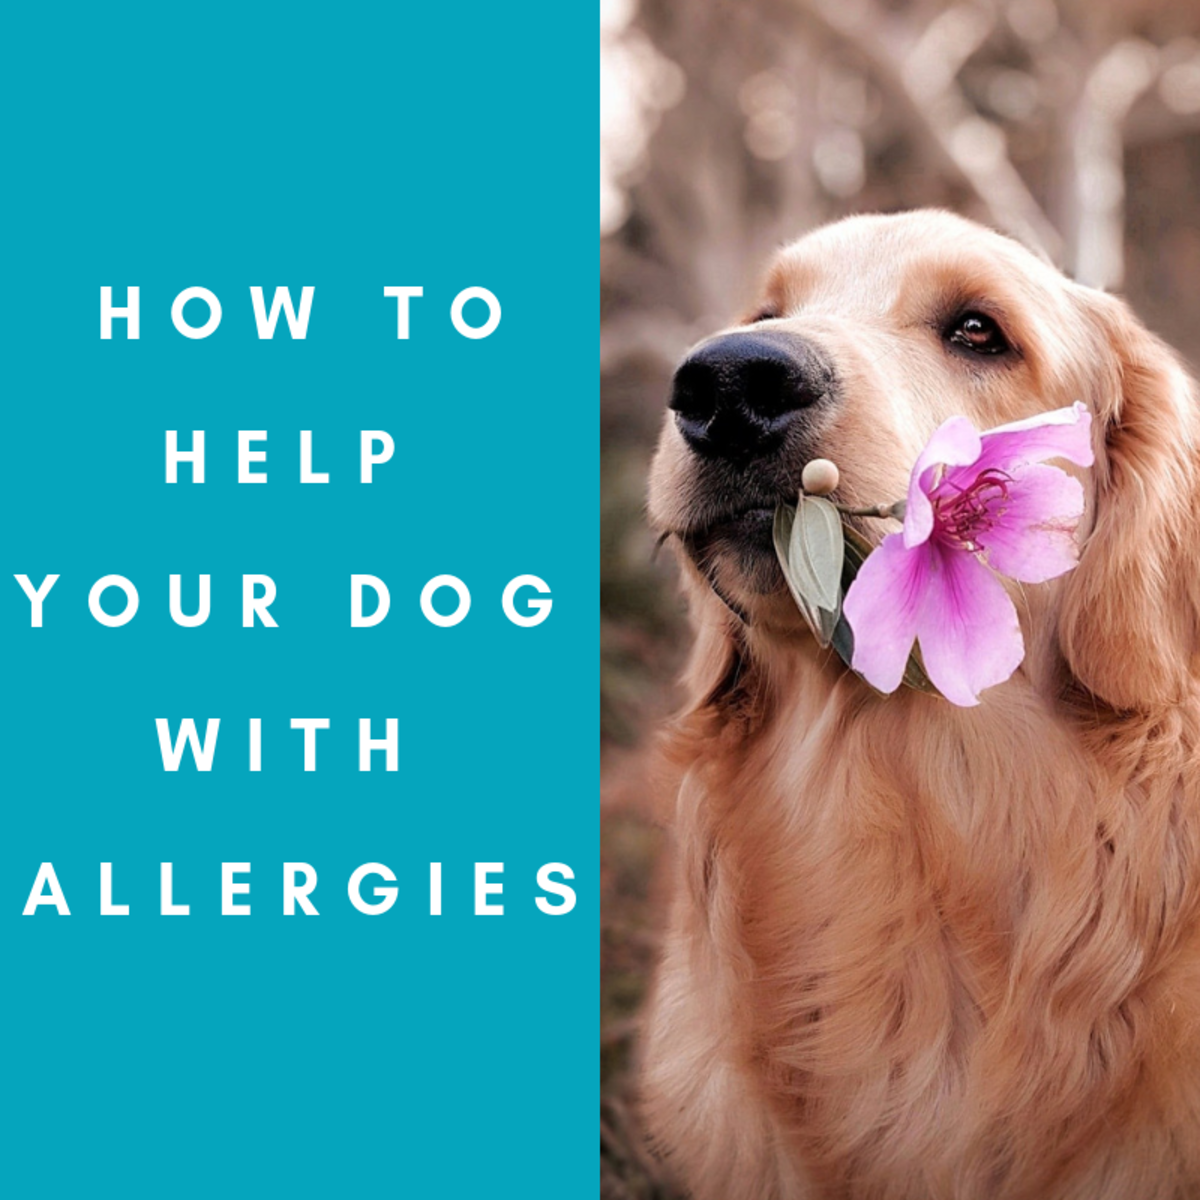 How to Help My Dog With Allergies